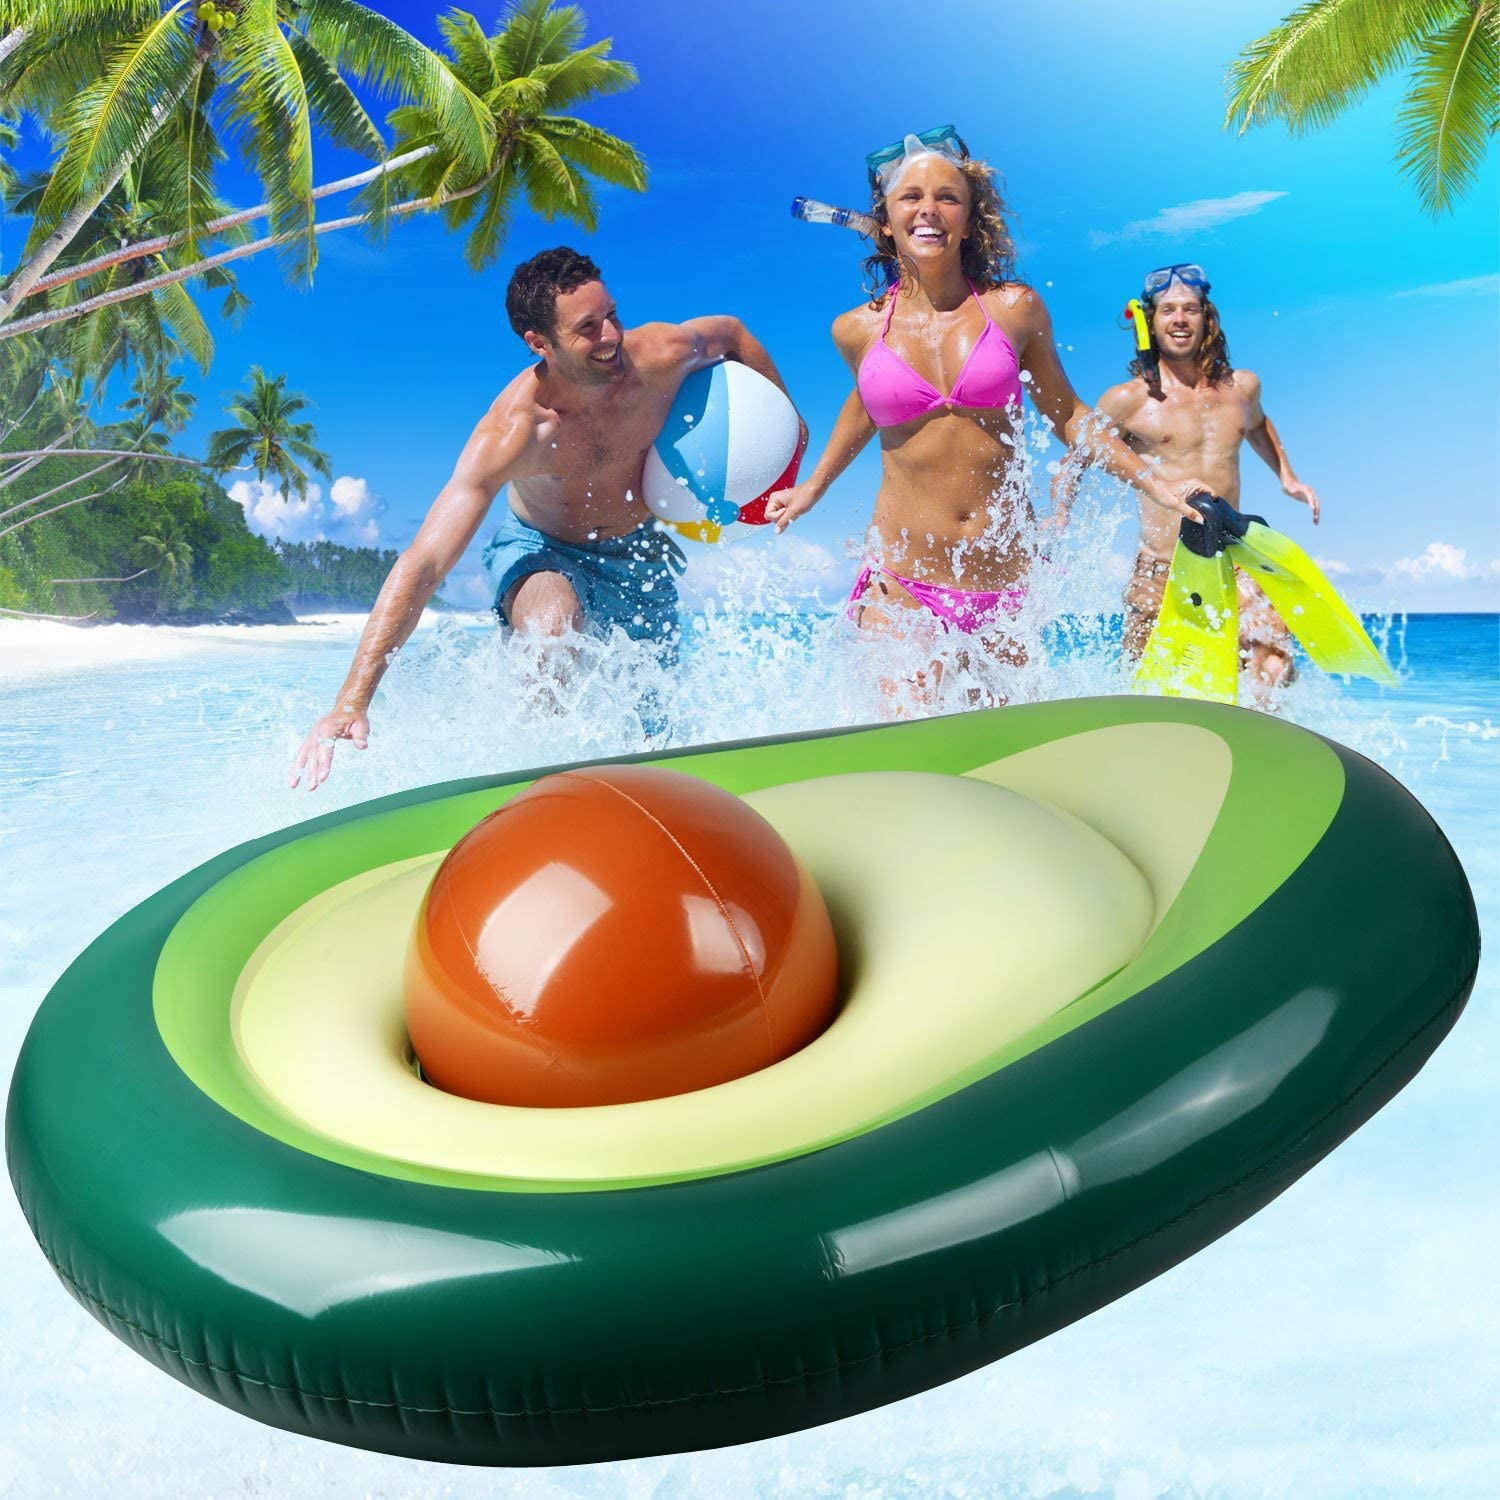 Zoostliss Inflatable Avocado Pool Float - Floatie with Ball Water Fun Large Blow Up Summer Beach Swimming Raft Kids Adults